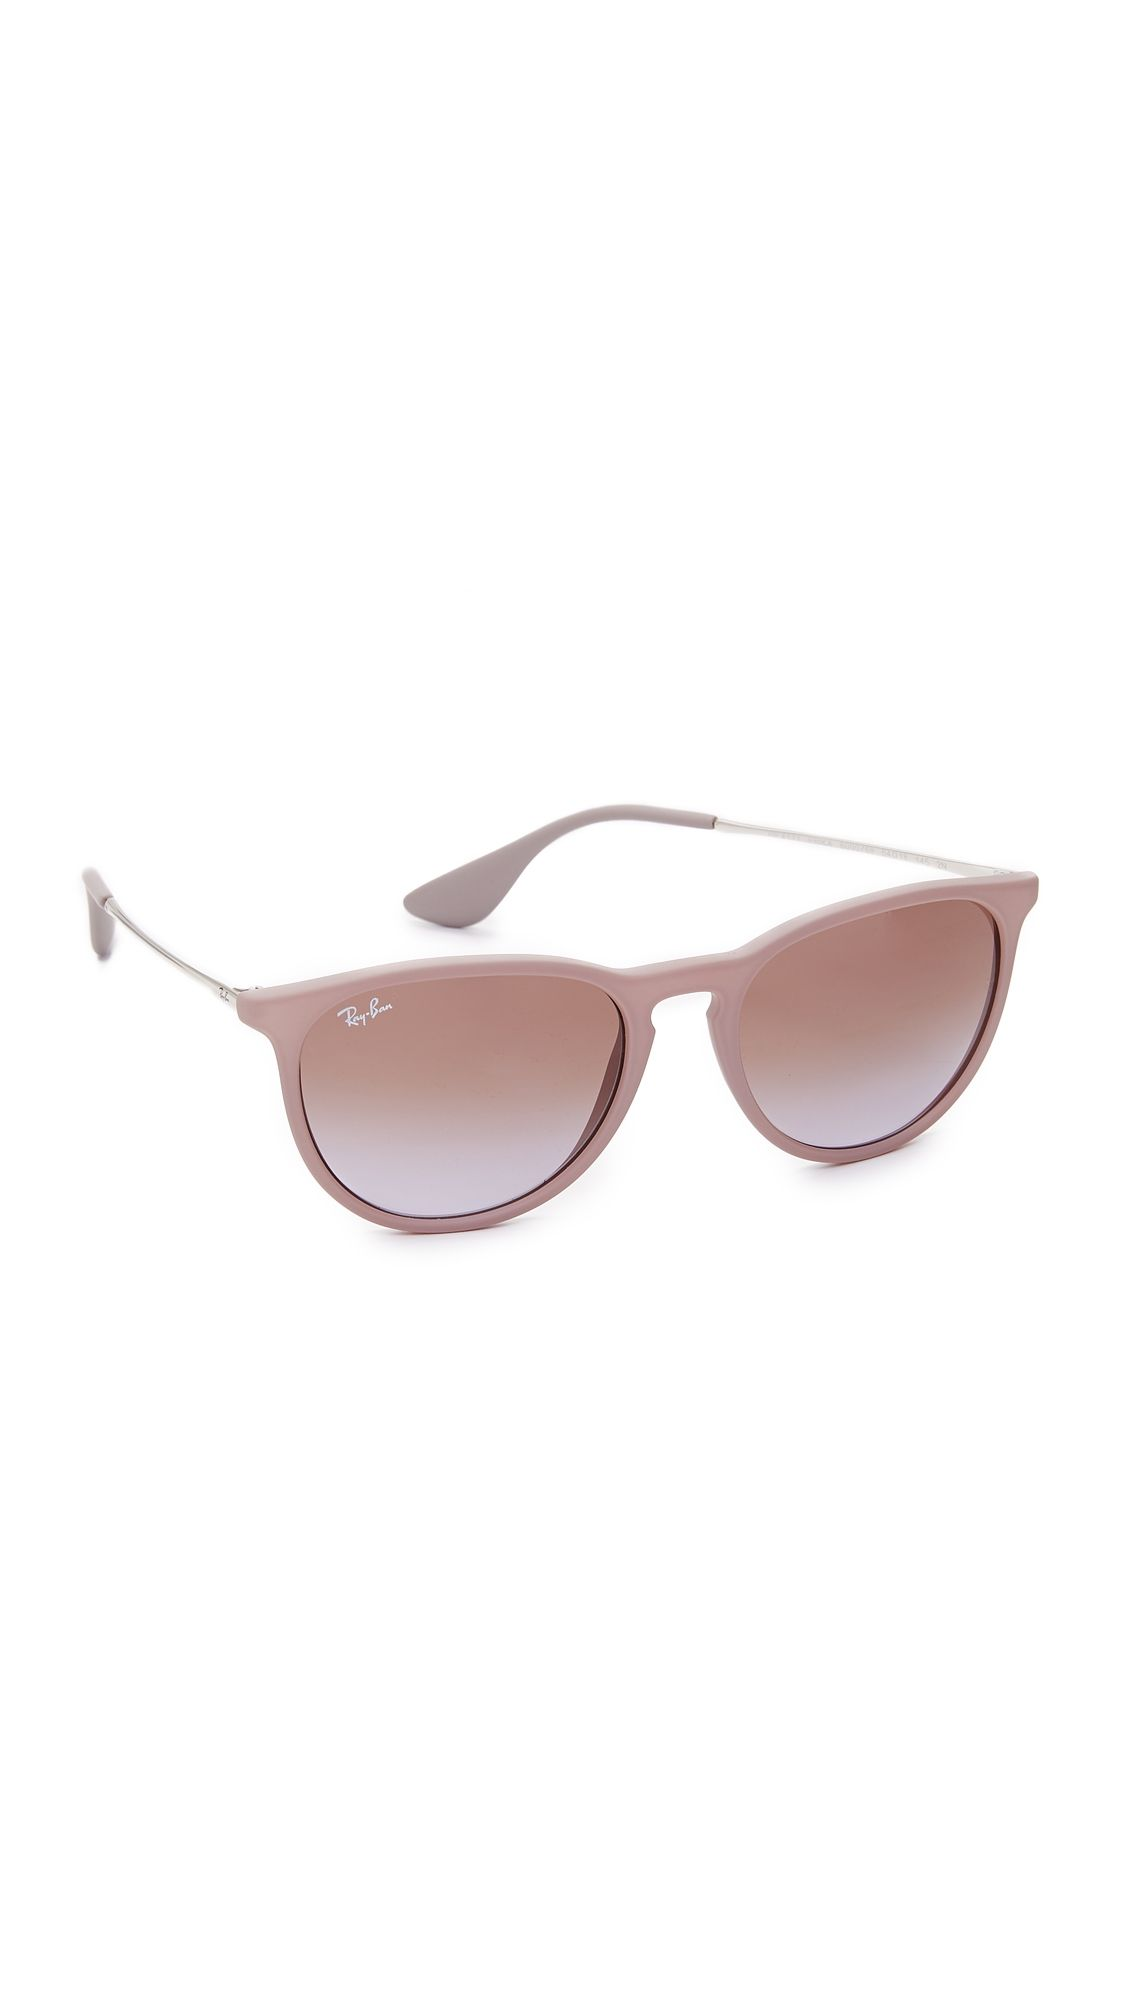 b9af77346d8d Ray-Ban RB4171 Erika Round Sunglasses in 2019